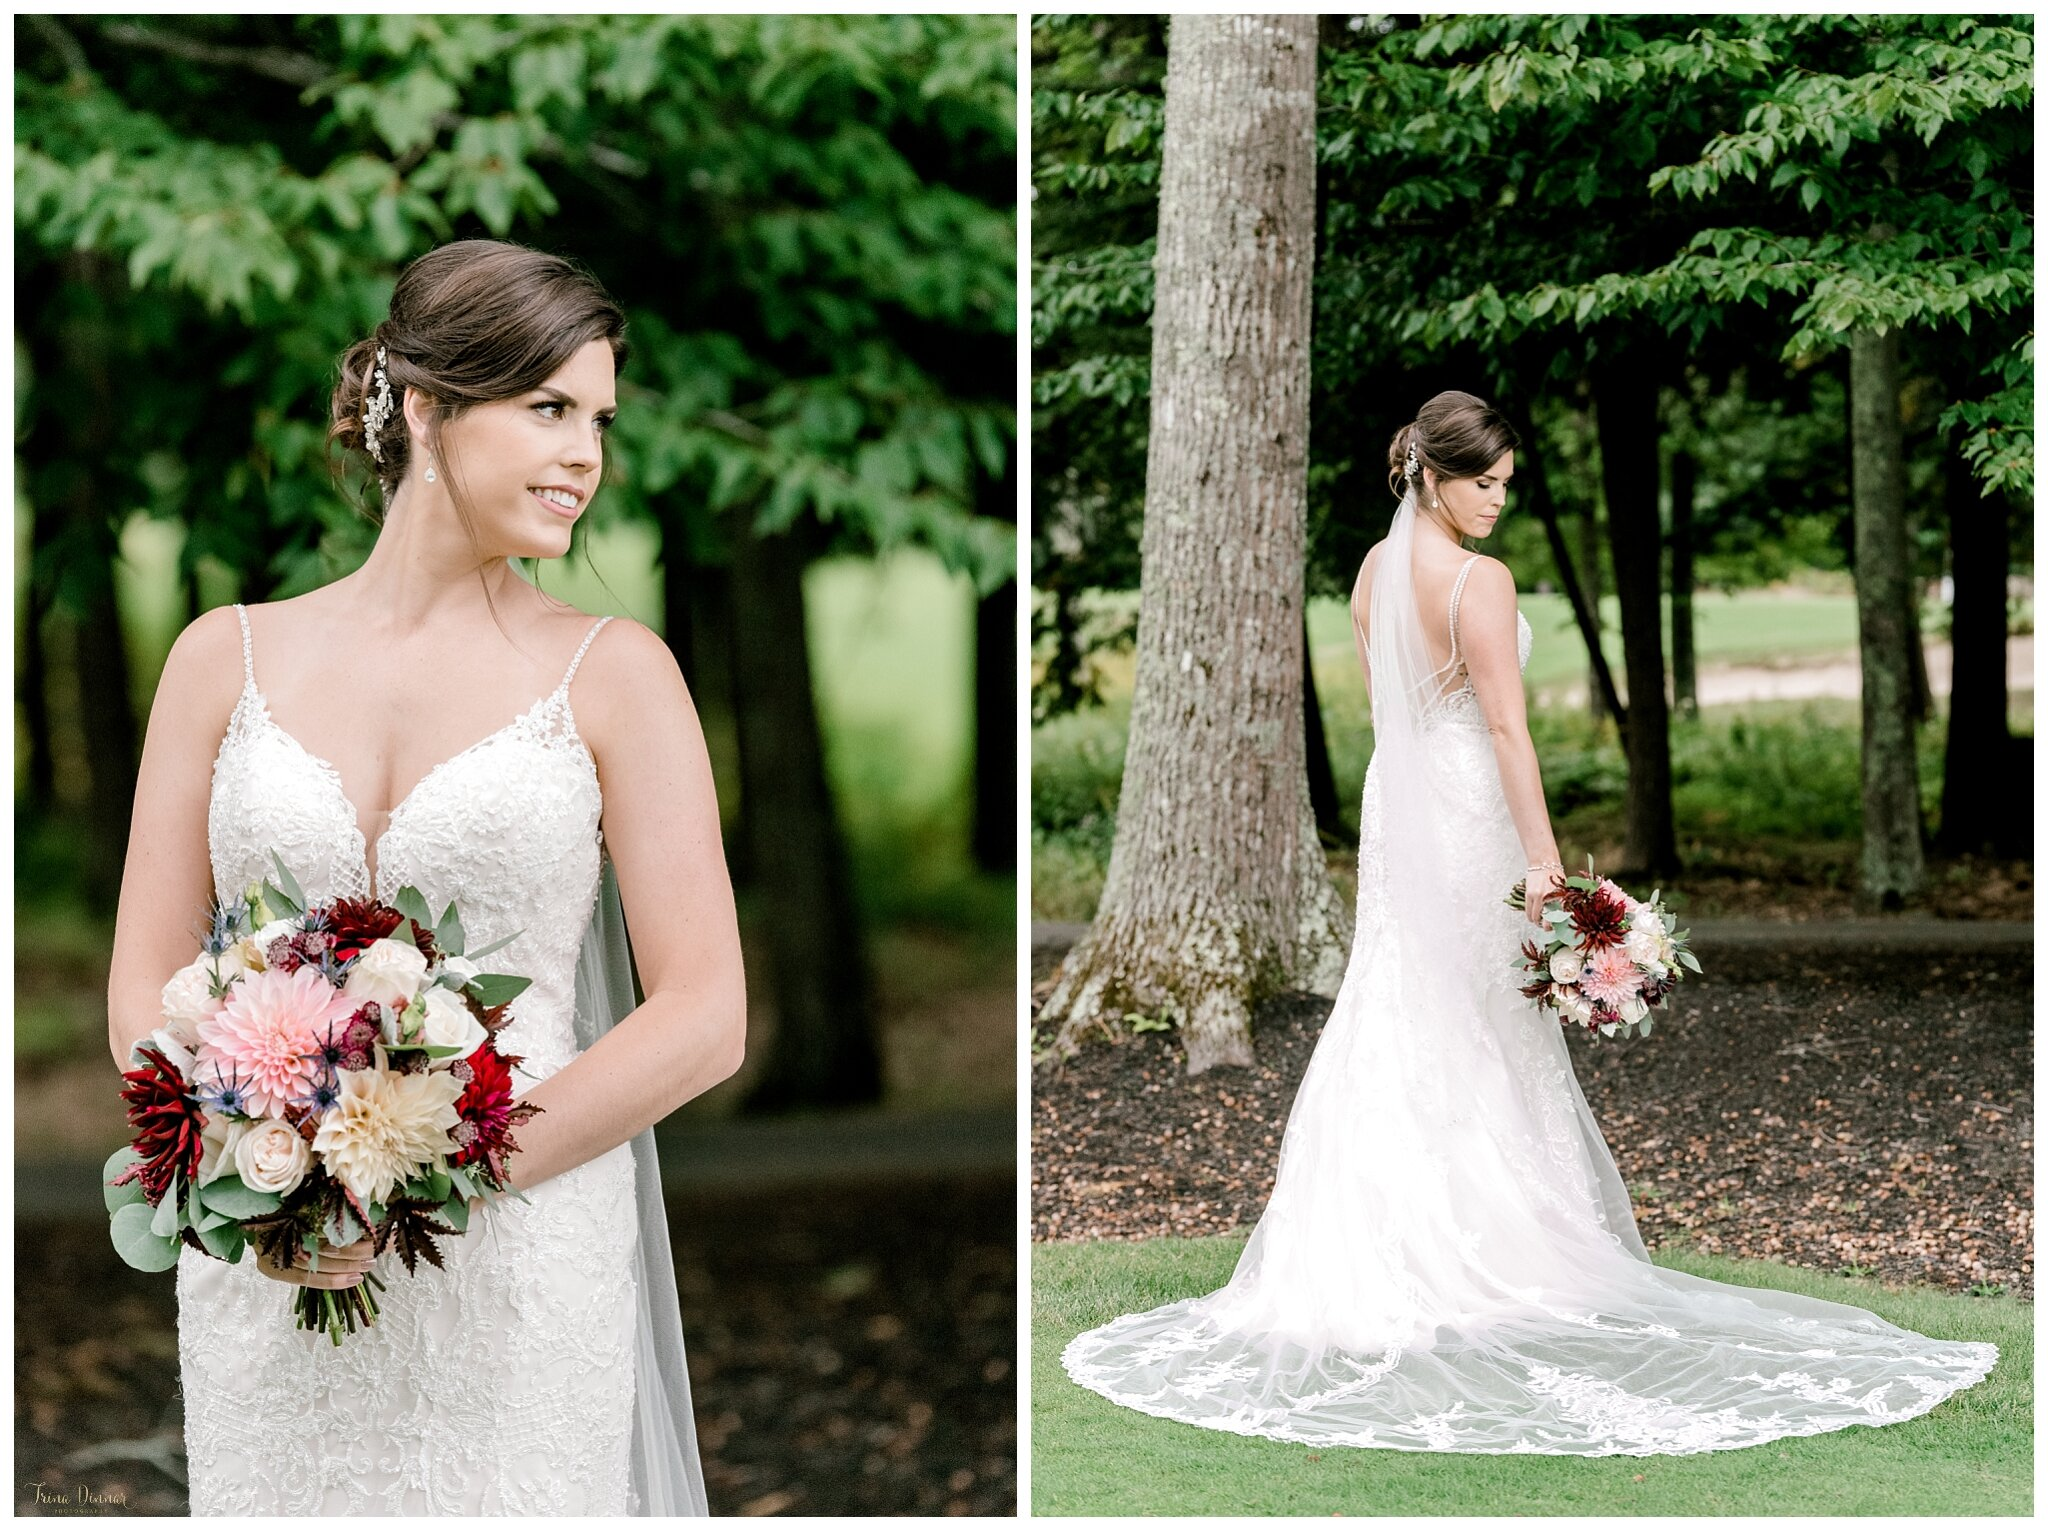 Maine Bridal Portraits at the Falmouth Country Club.